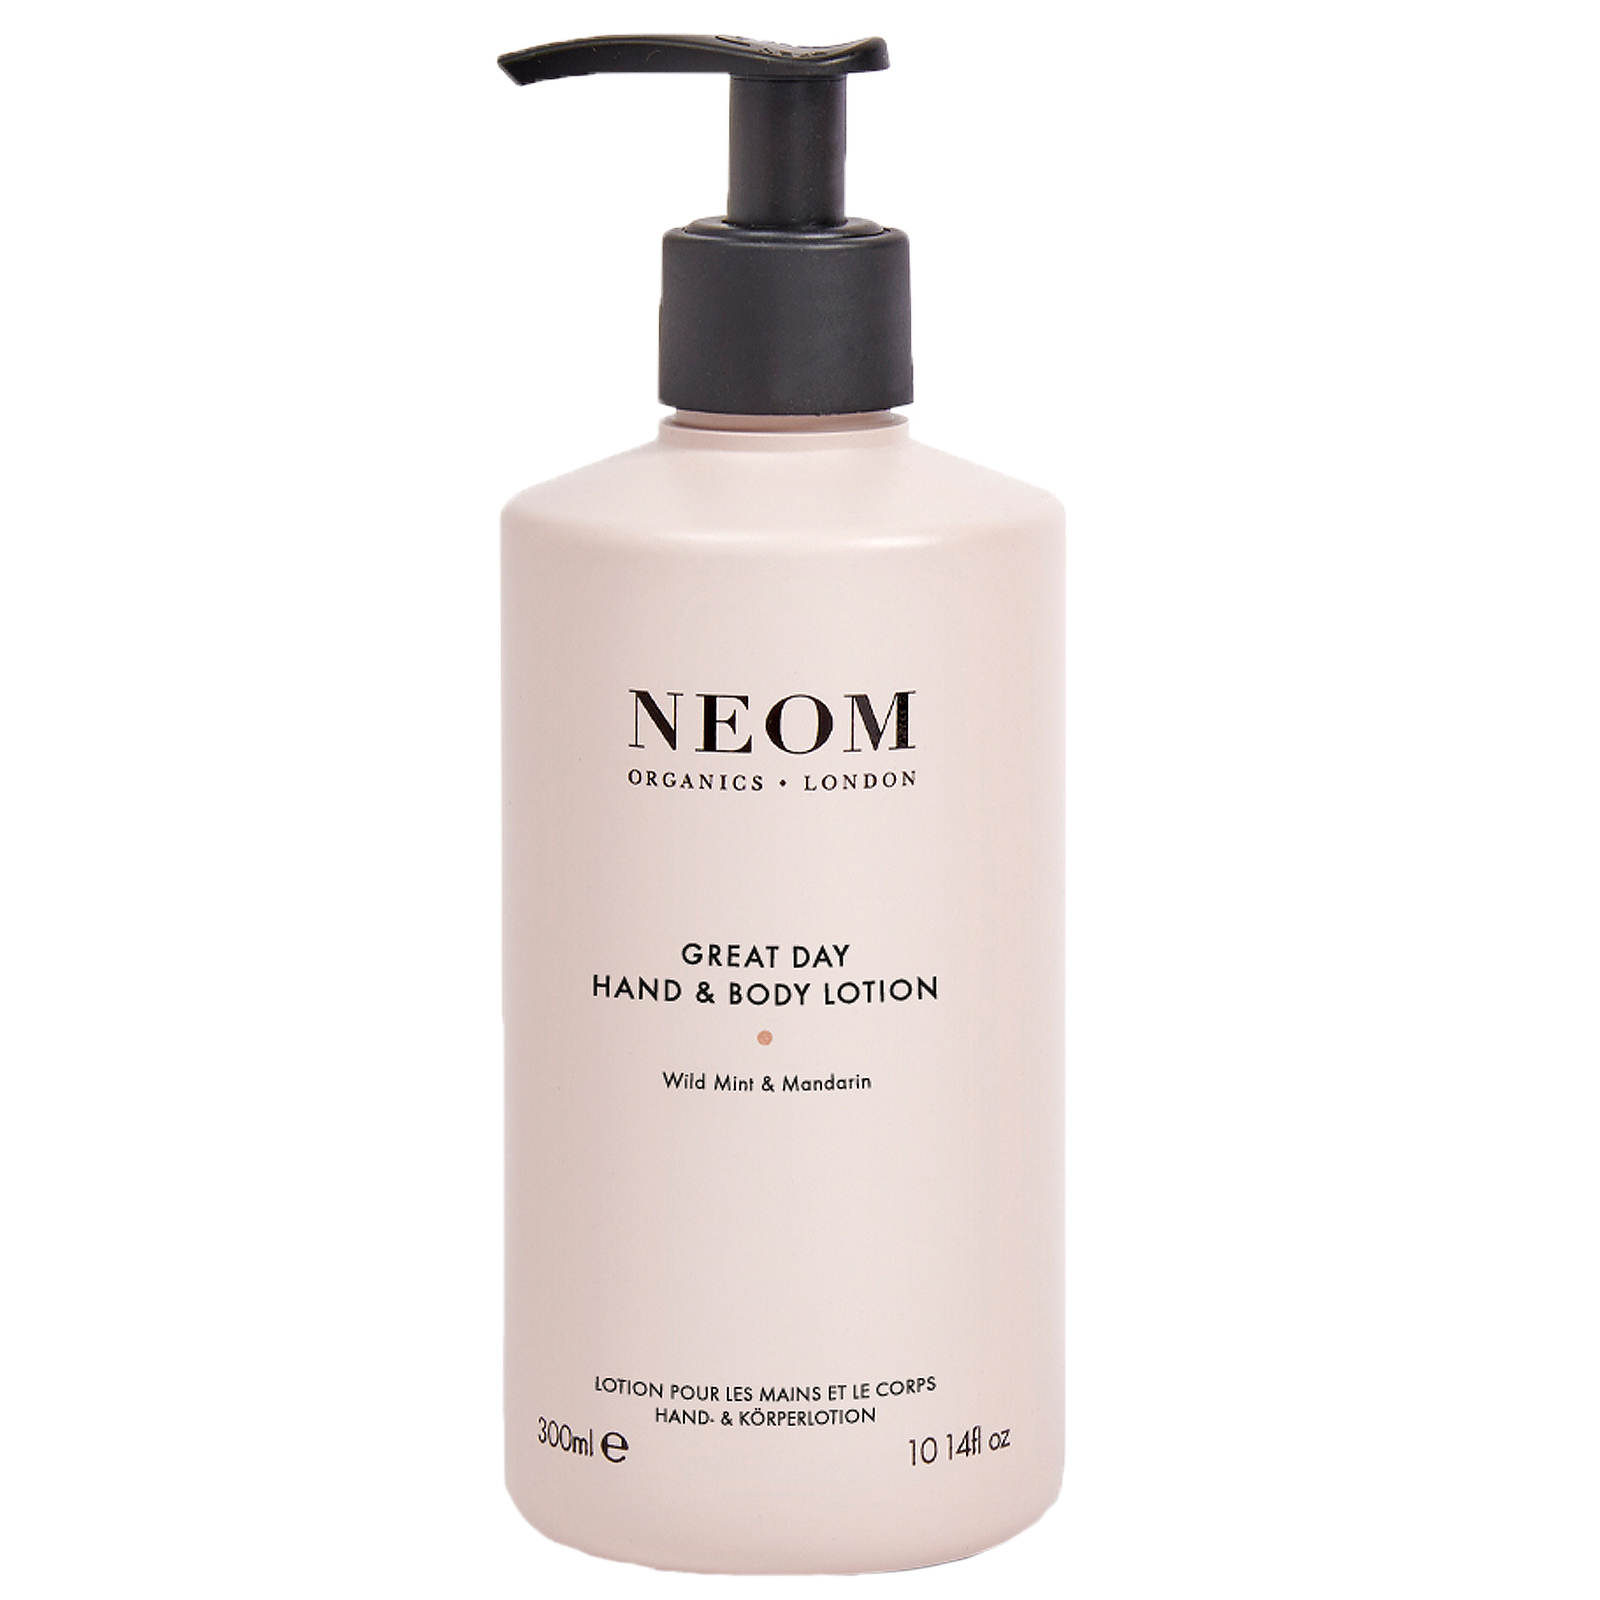 Neom Organics London Scent To Make You Happy Great Day Body & Hand Lotion 300ml